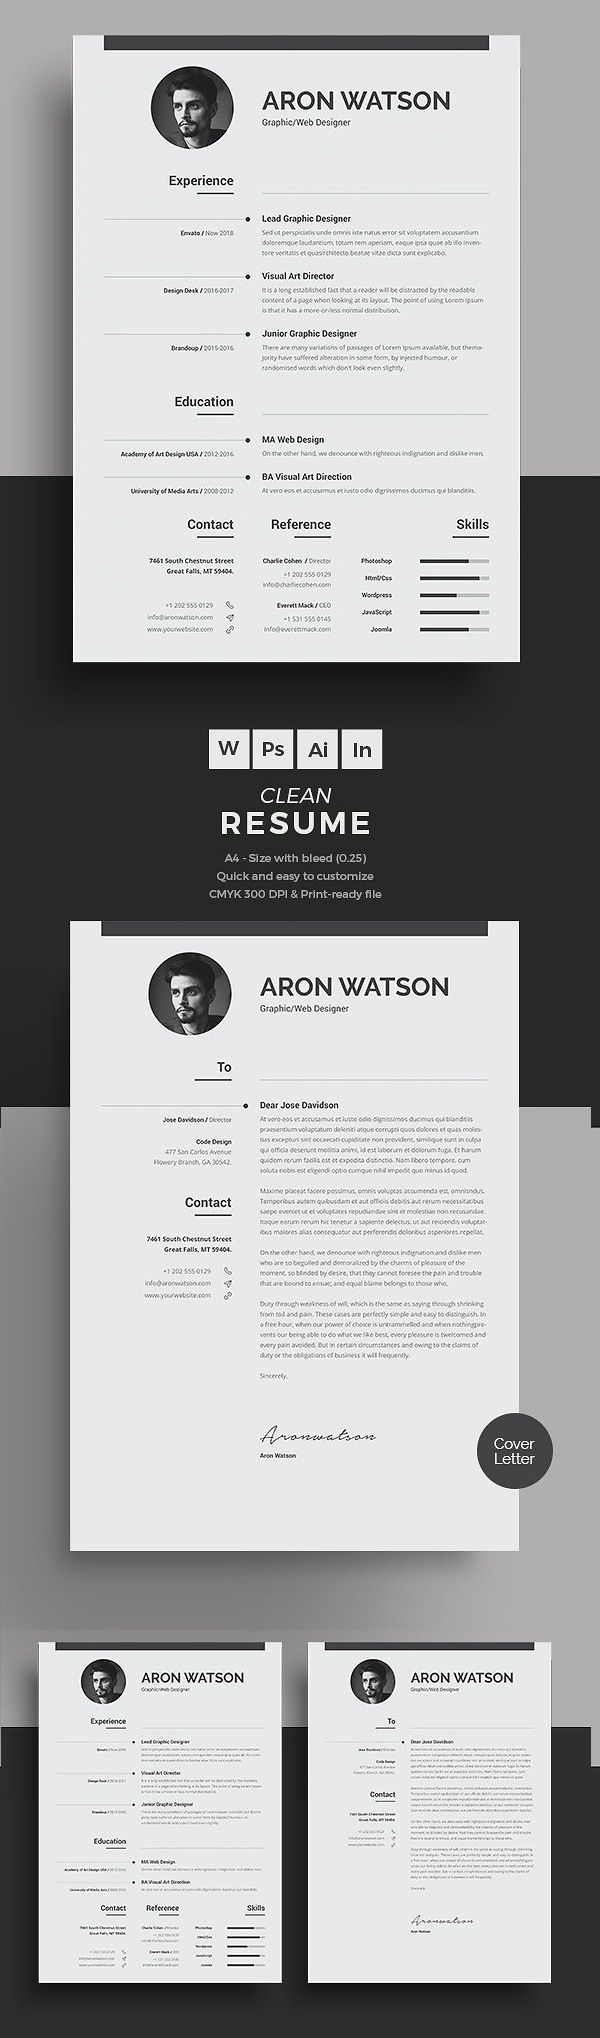 New Professional CV / Resume Templates with Cover Letter | Design | Graphic Design Junction